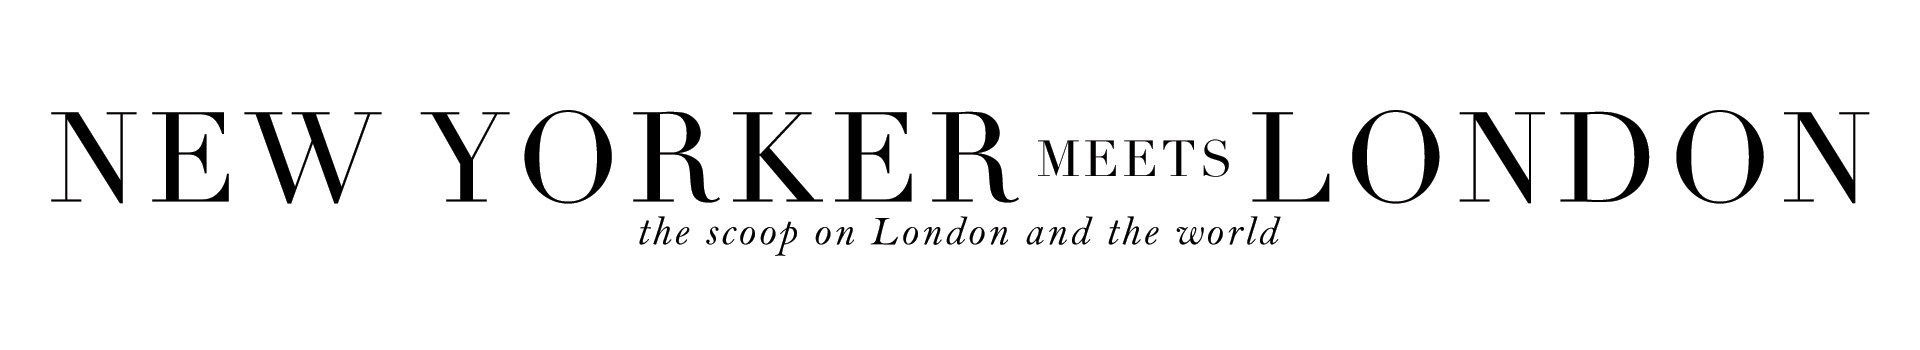 New Yorker Meets London – Luxury Blogger - Luxury Travel, Lifestyle, Food and Style Blog